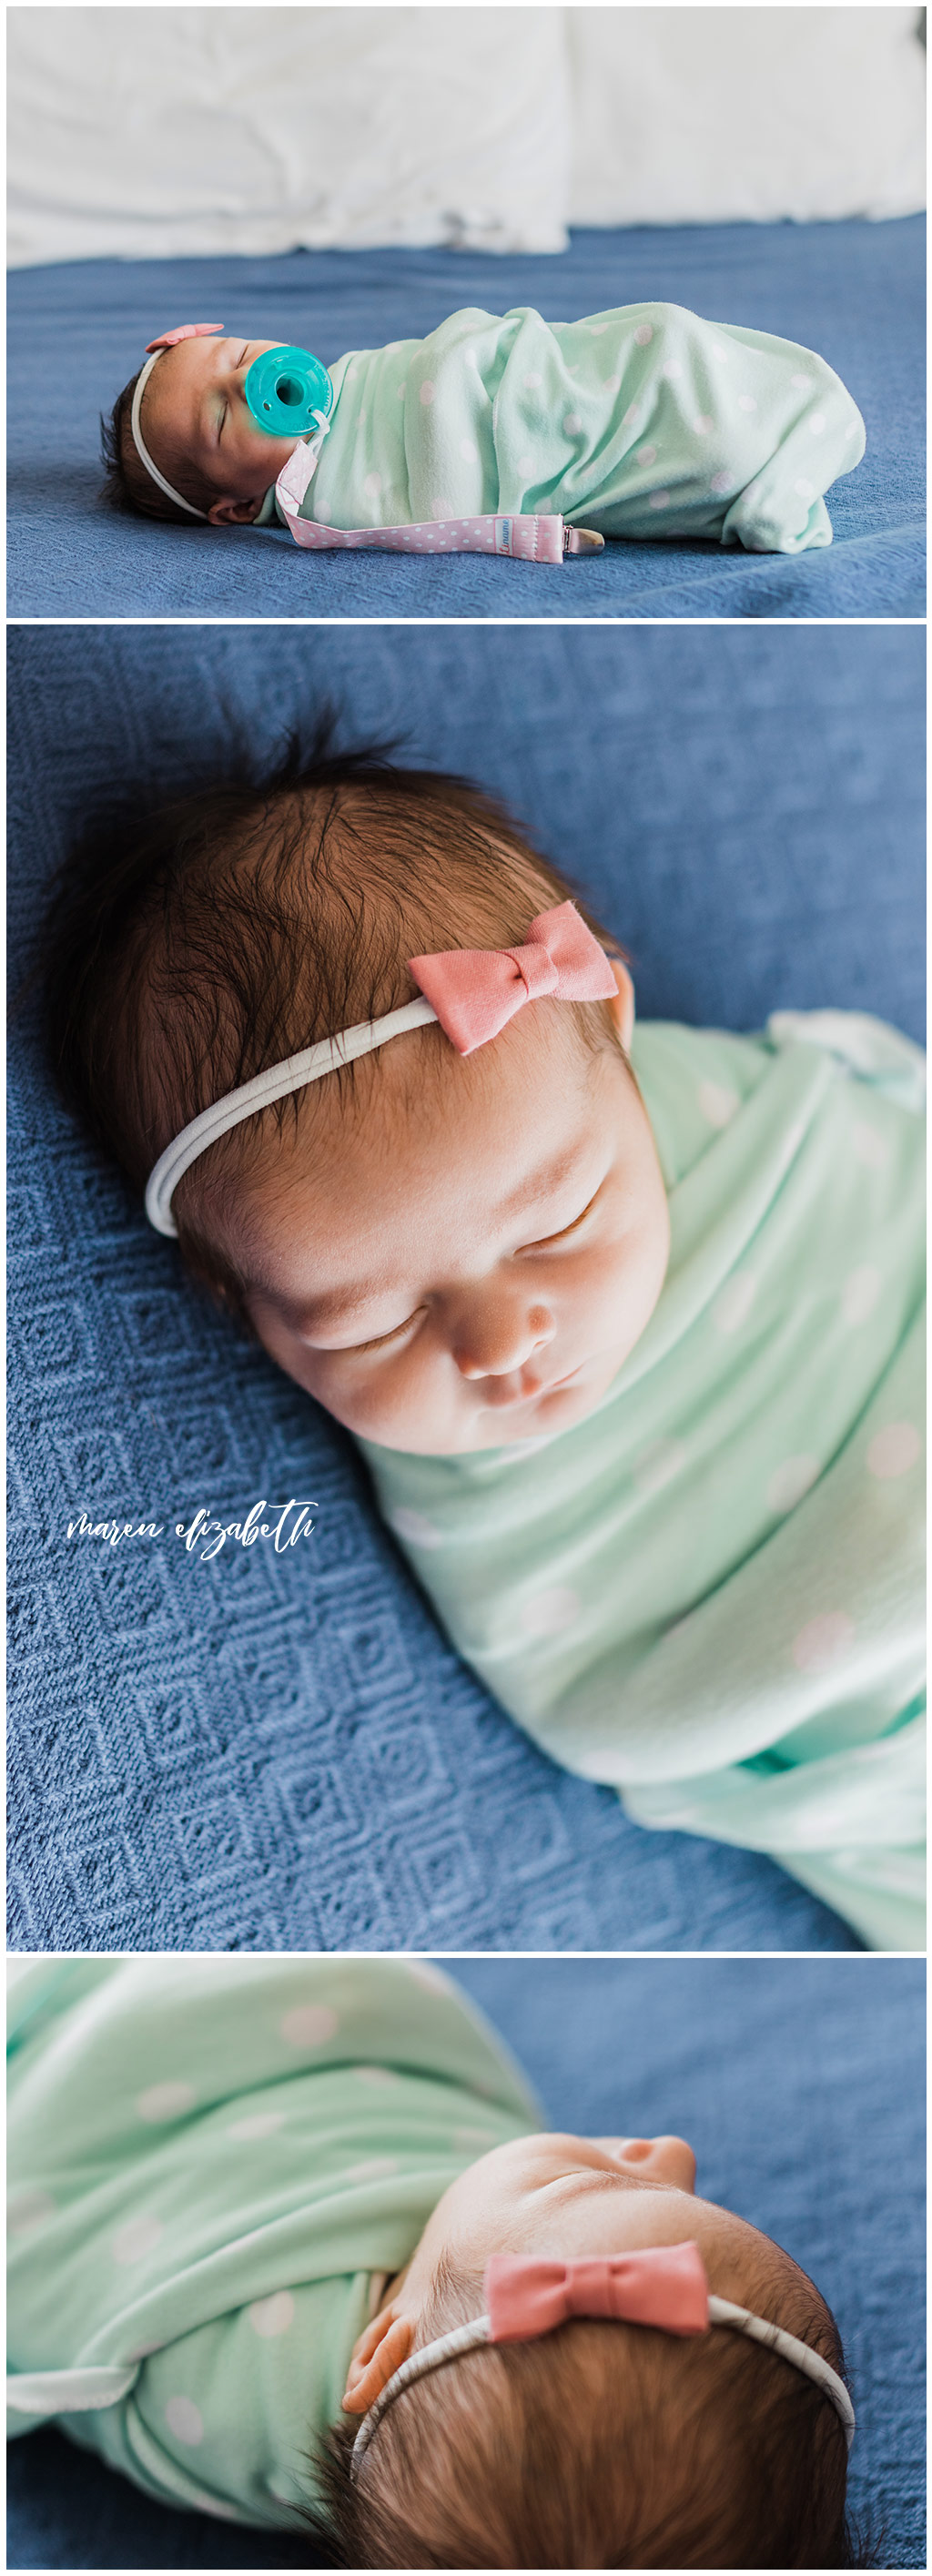 """I get asked """"What should our newborn wear in pictures?""""Here are a couple practical tips on how to dress your newborn for pictures plus my #1 tip you'd probably never think of.   Maren Elizabeth Photography   Arizona Newborn Photographer"""